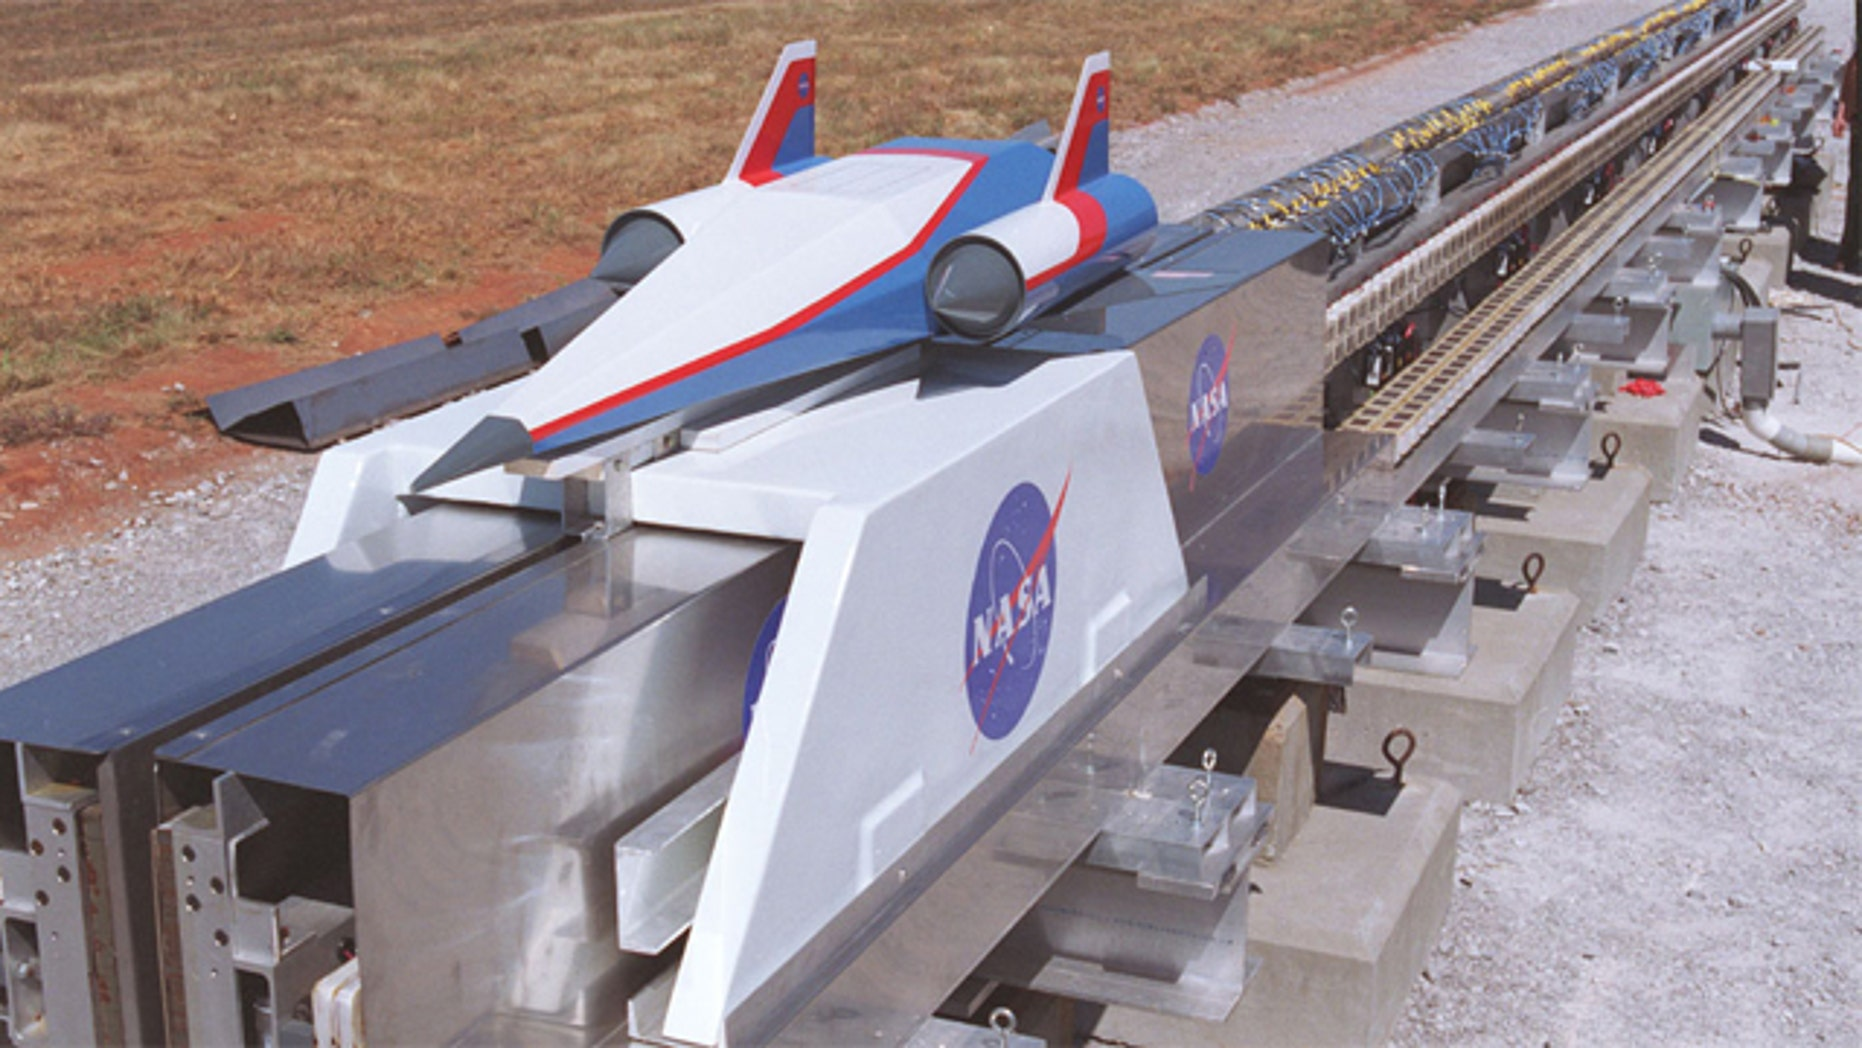 Different technologies to push a spacecraft down a long rail have been tested in several settings, including this Magnetic Levitation (MagLev) System evaluated at NASA's Marshall Space Flight Center.